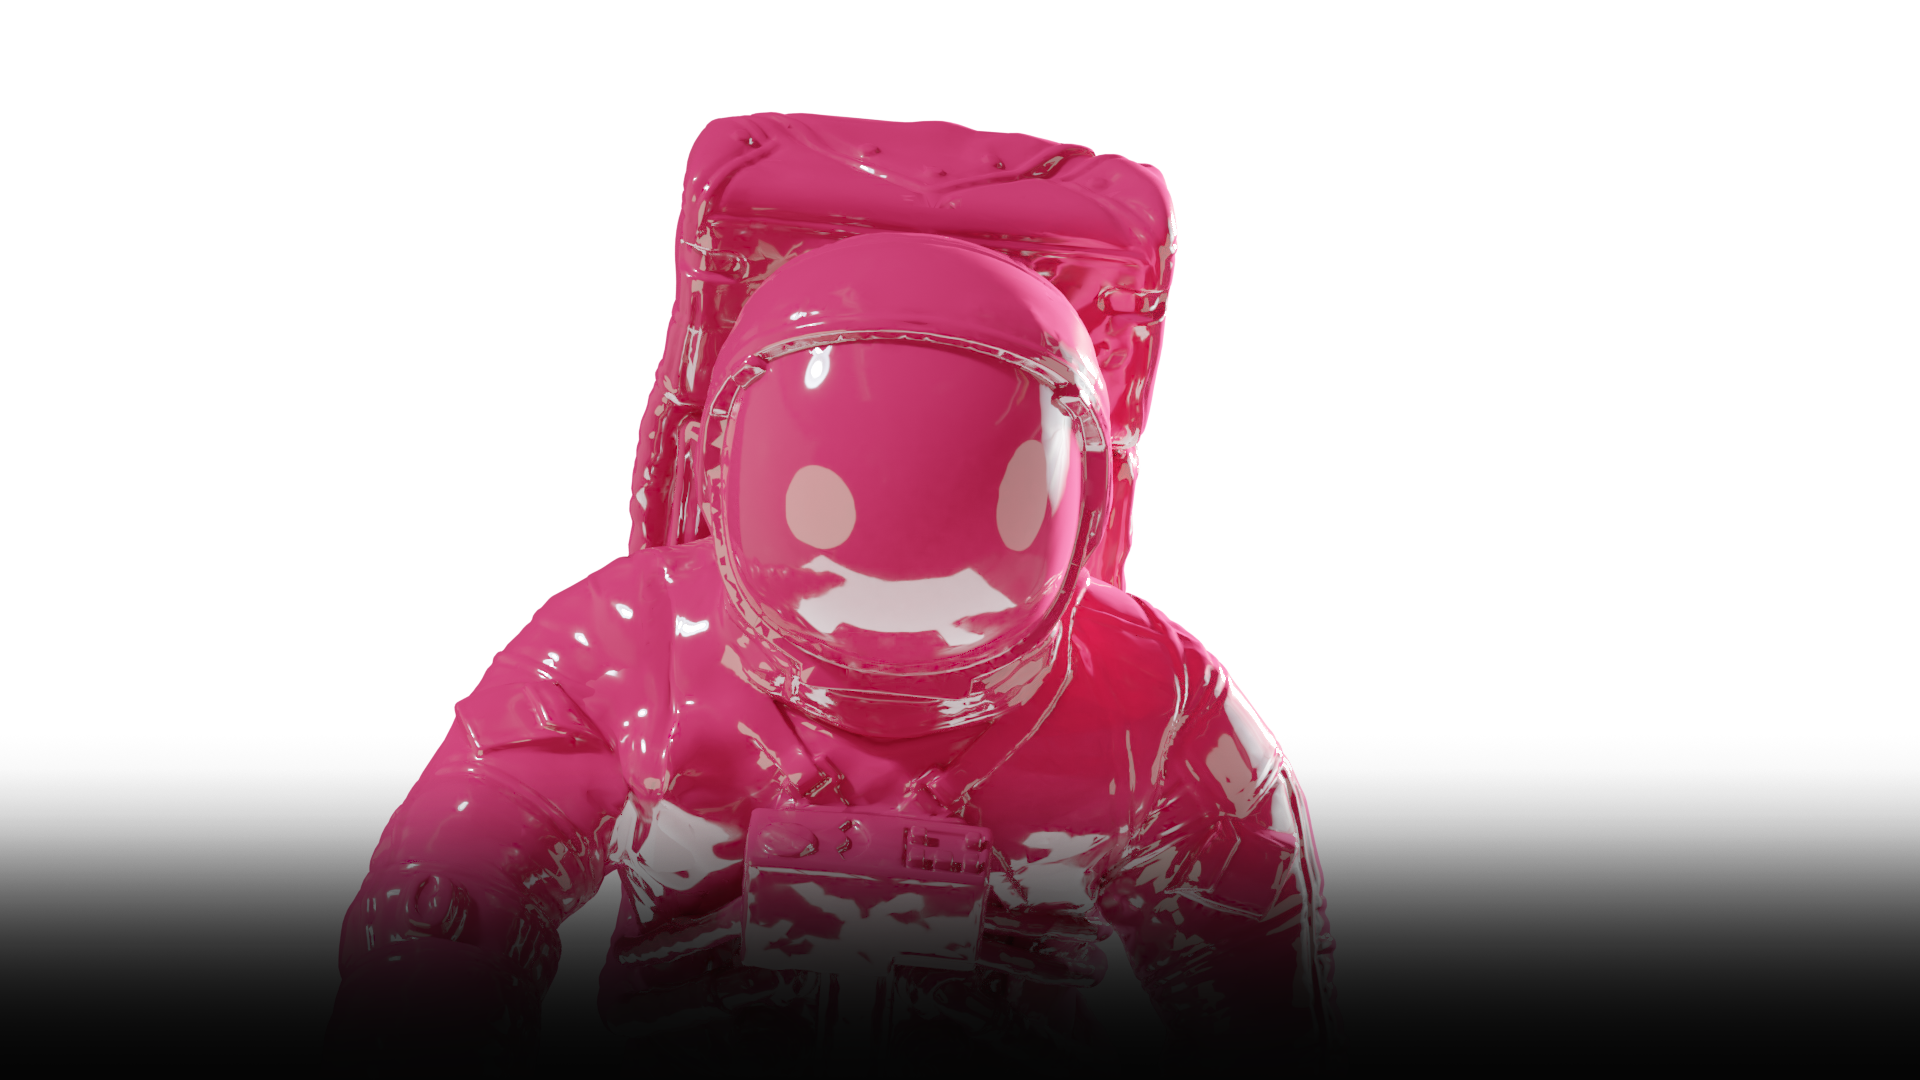 Spaceman made in Webflow